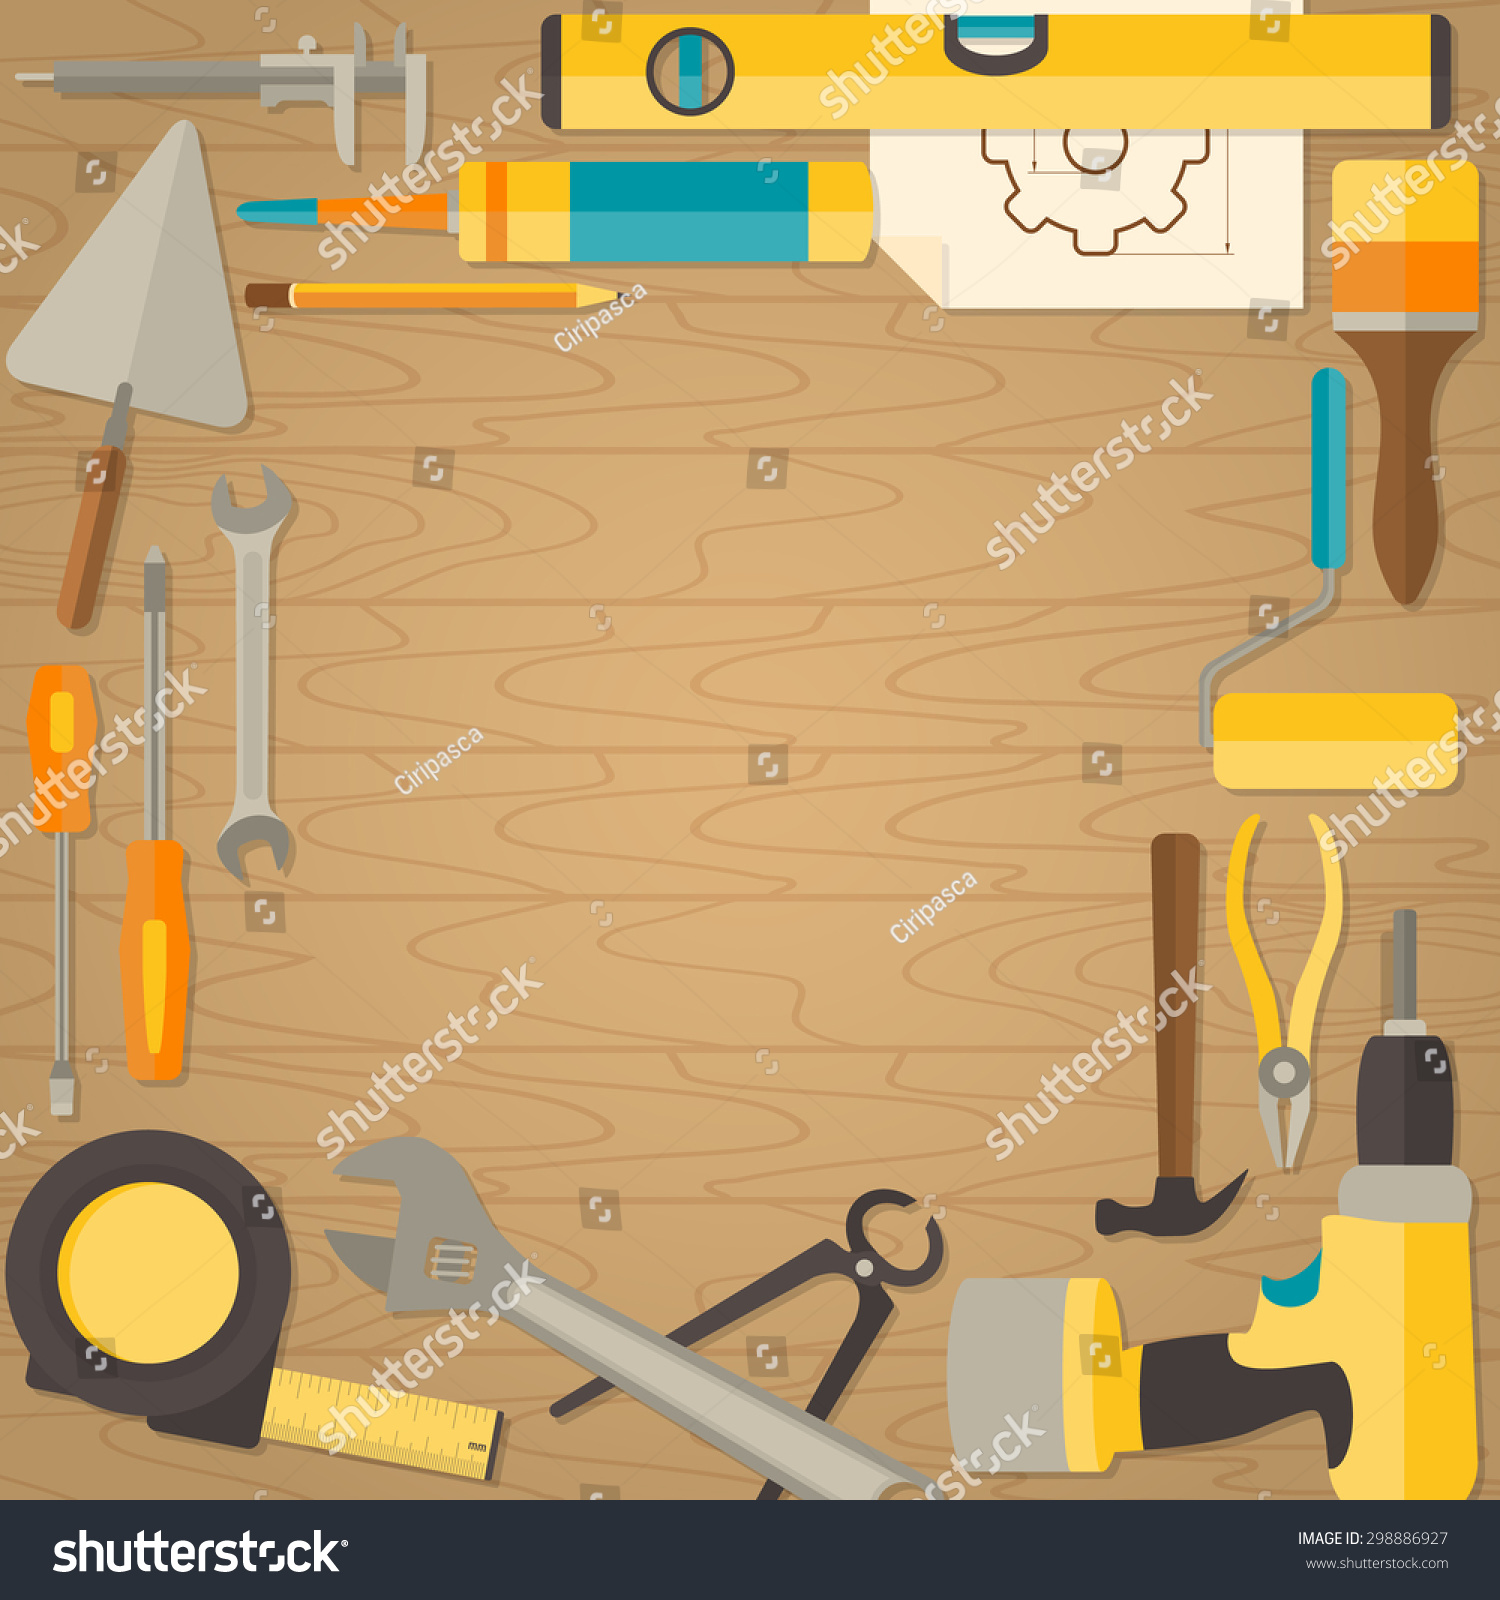 Do-it-yourself construction: a selection of sites